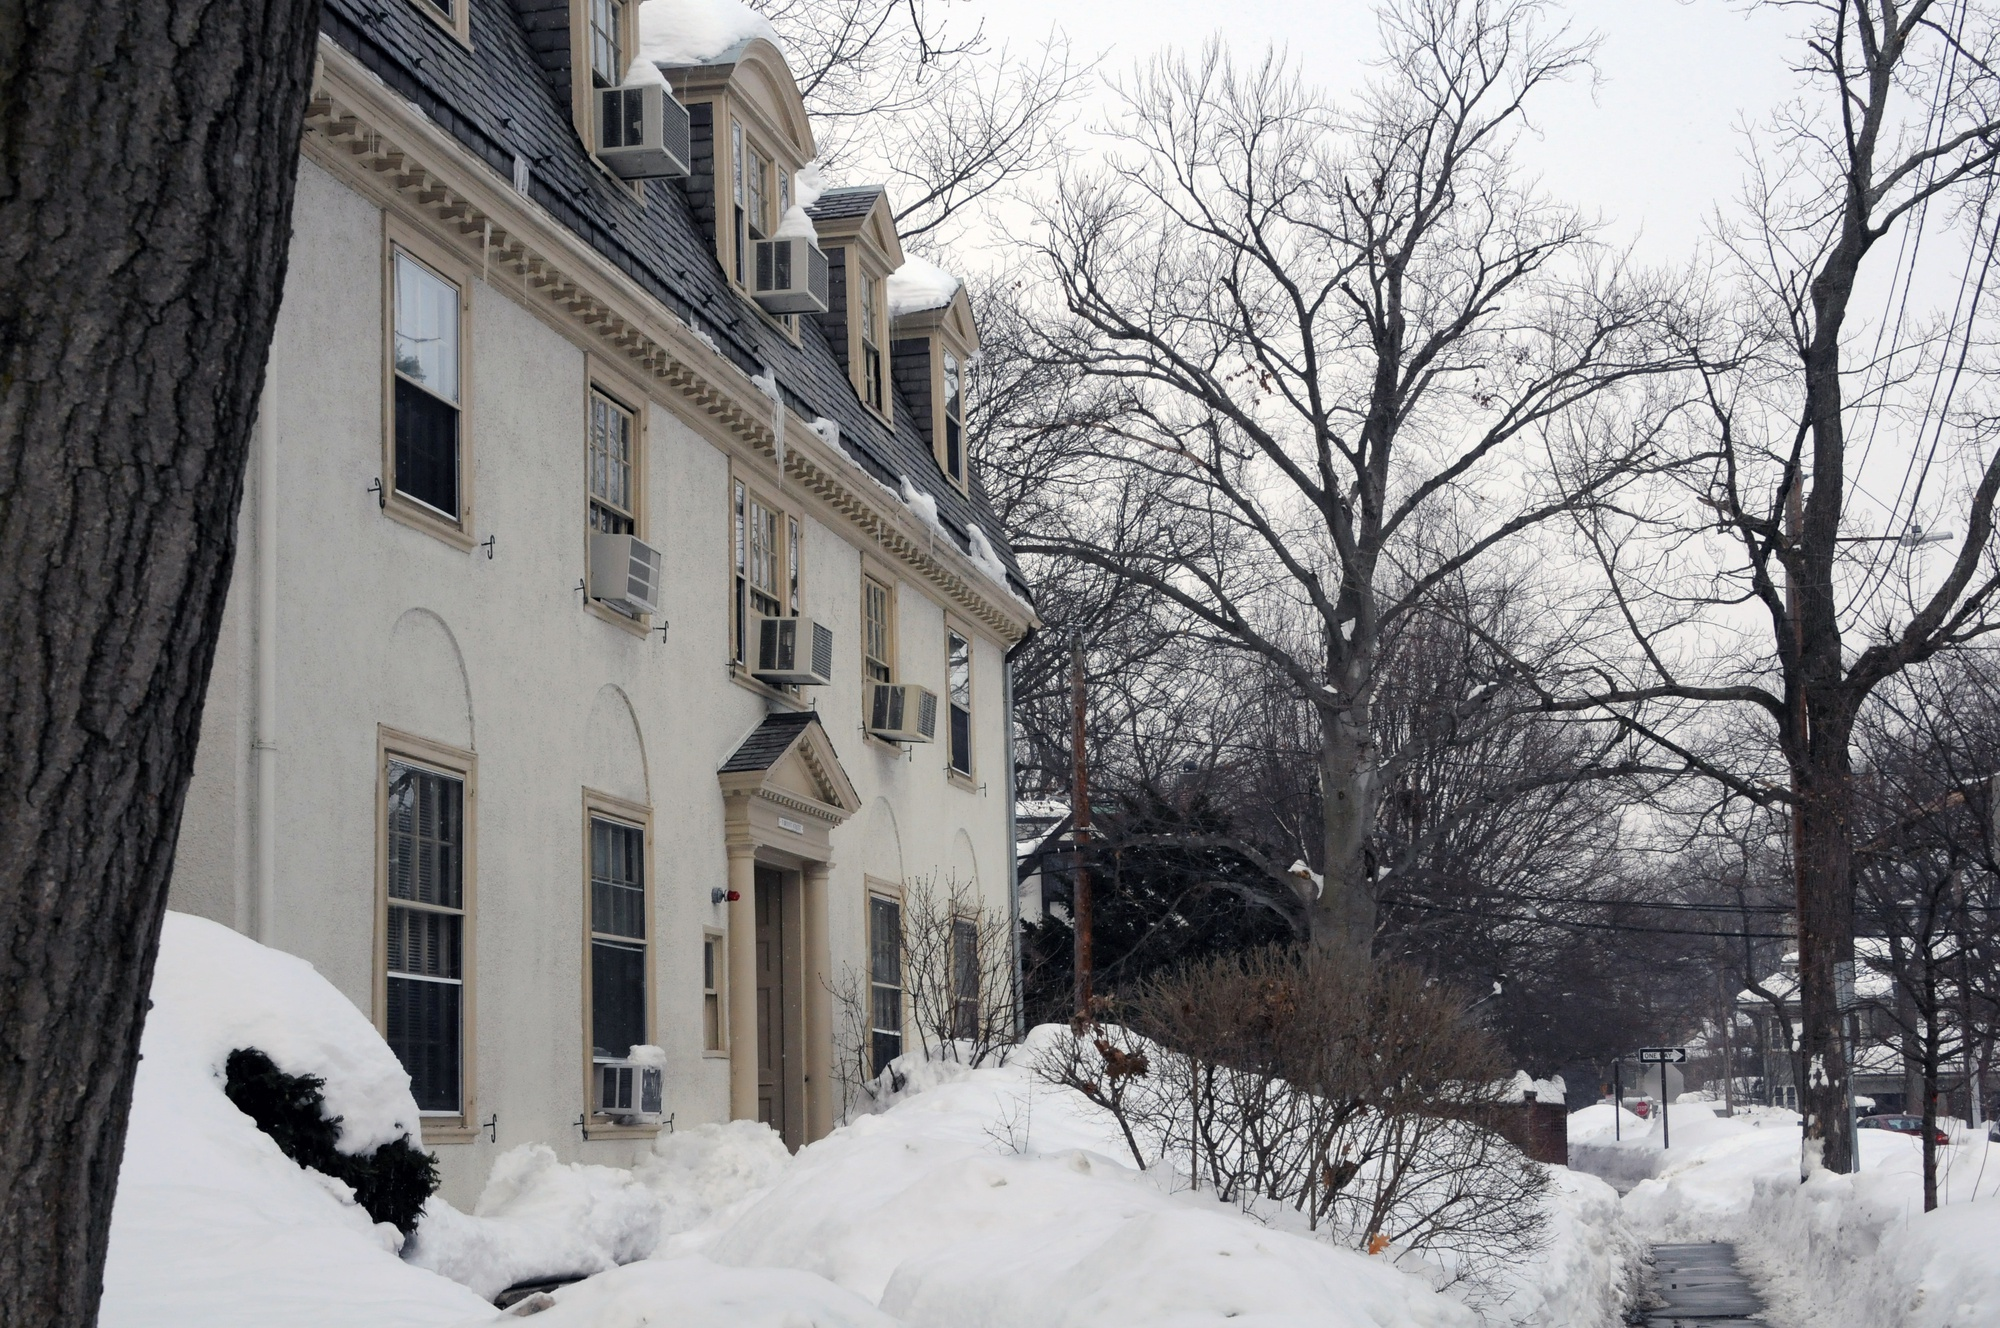 Language offices in the Department of East Asian Languages and Civilizations are housed in a re-purposed residential home at 5 Bryant Street. Department administrators said the space does not have the capacity to accommodate approximately 40 instructors and administrators.